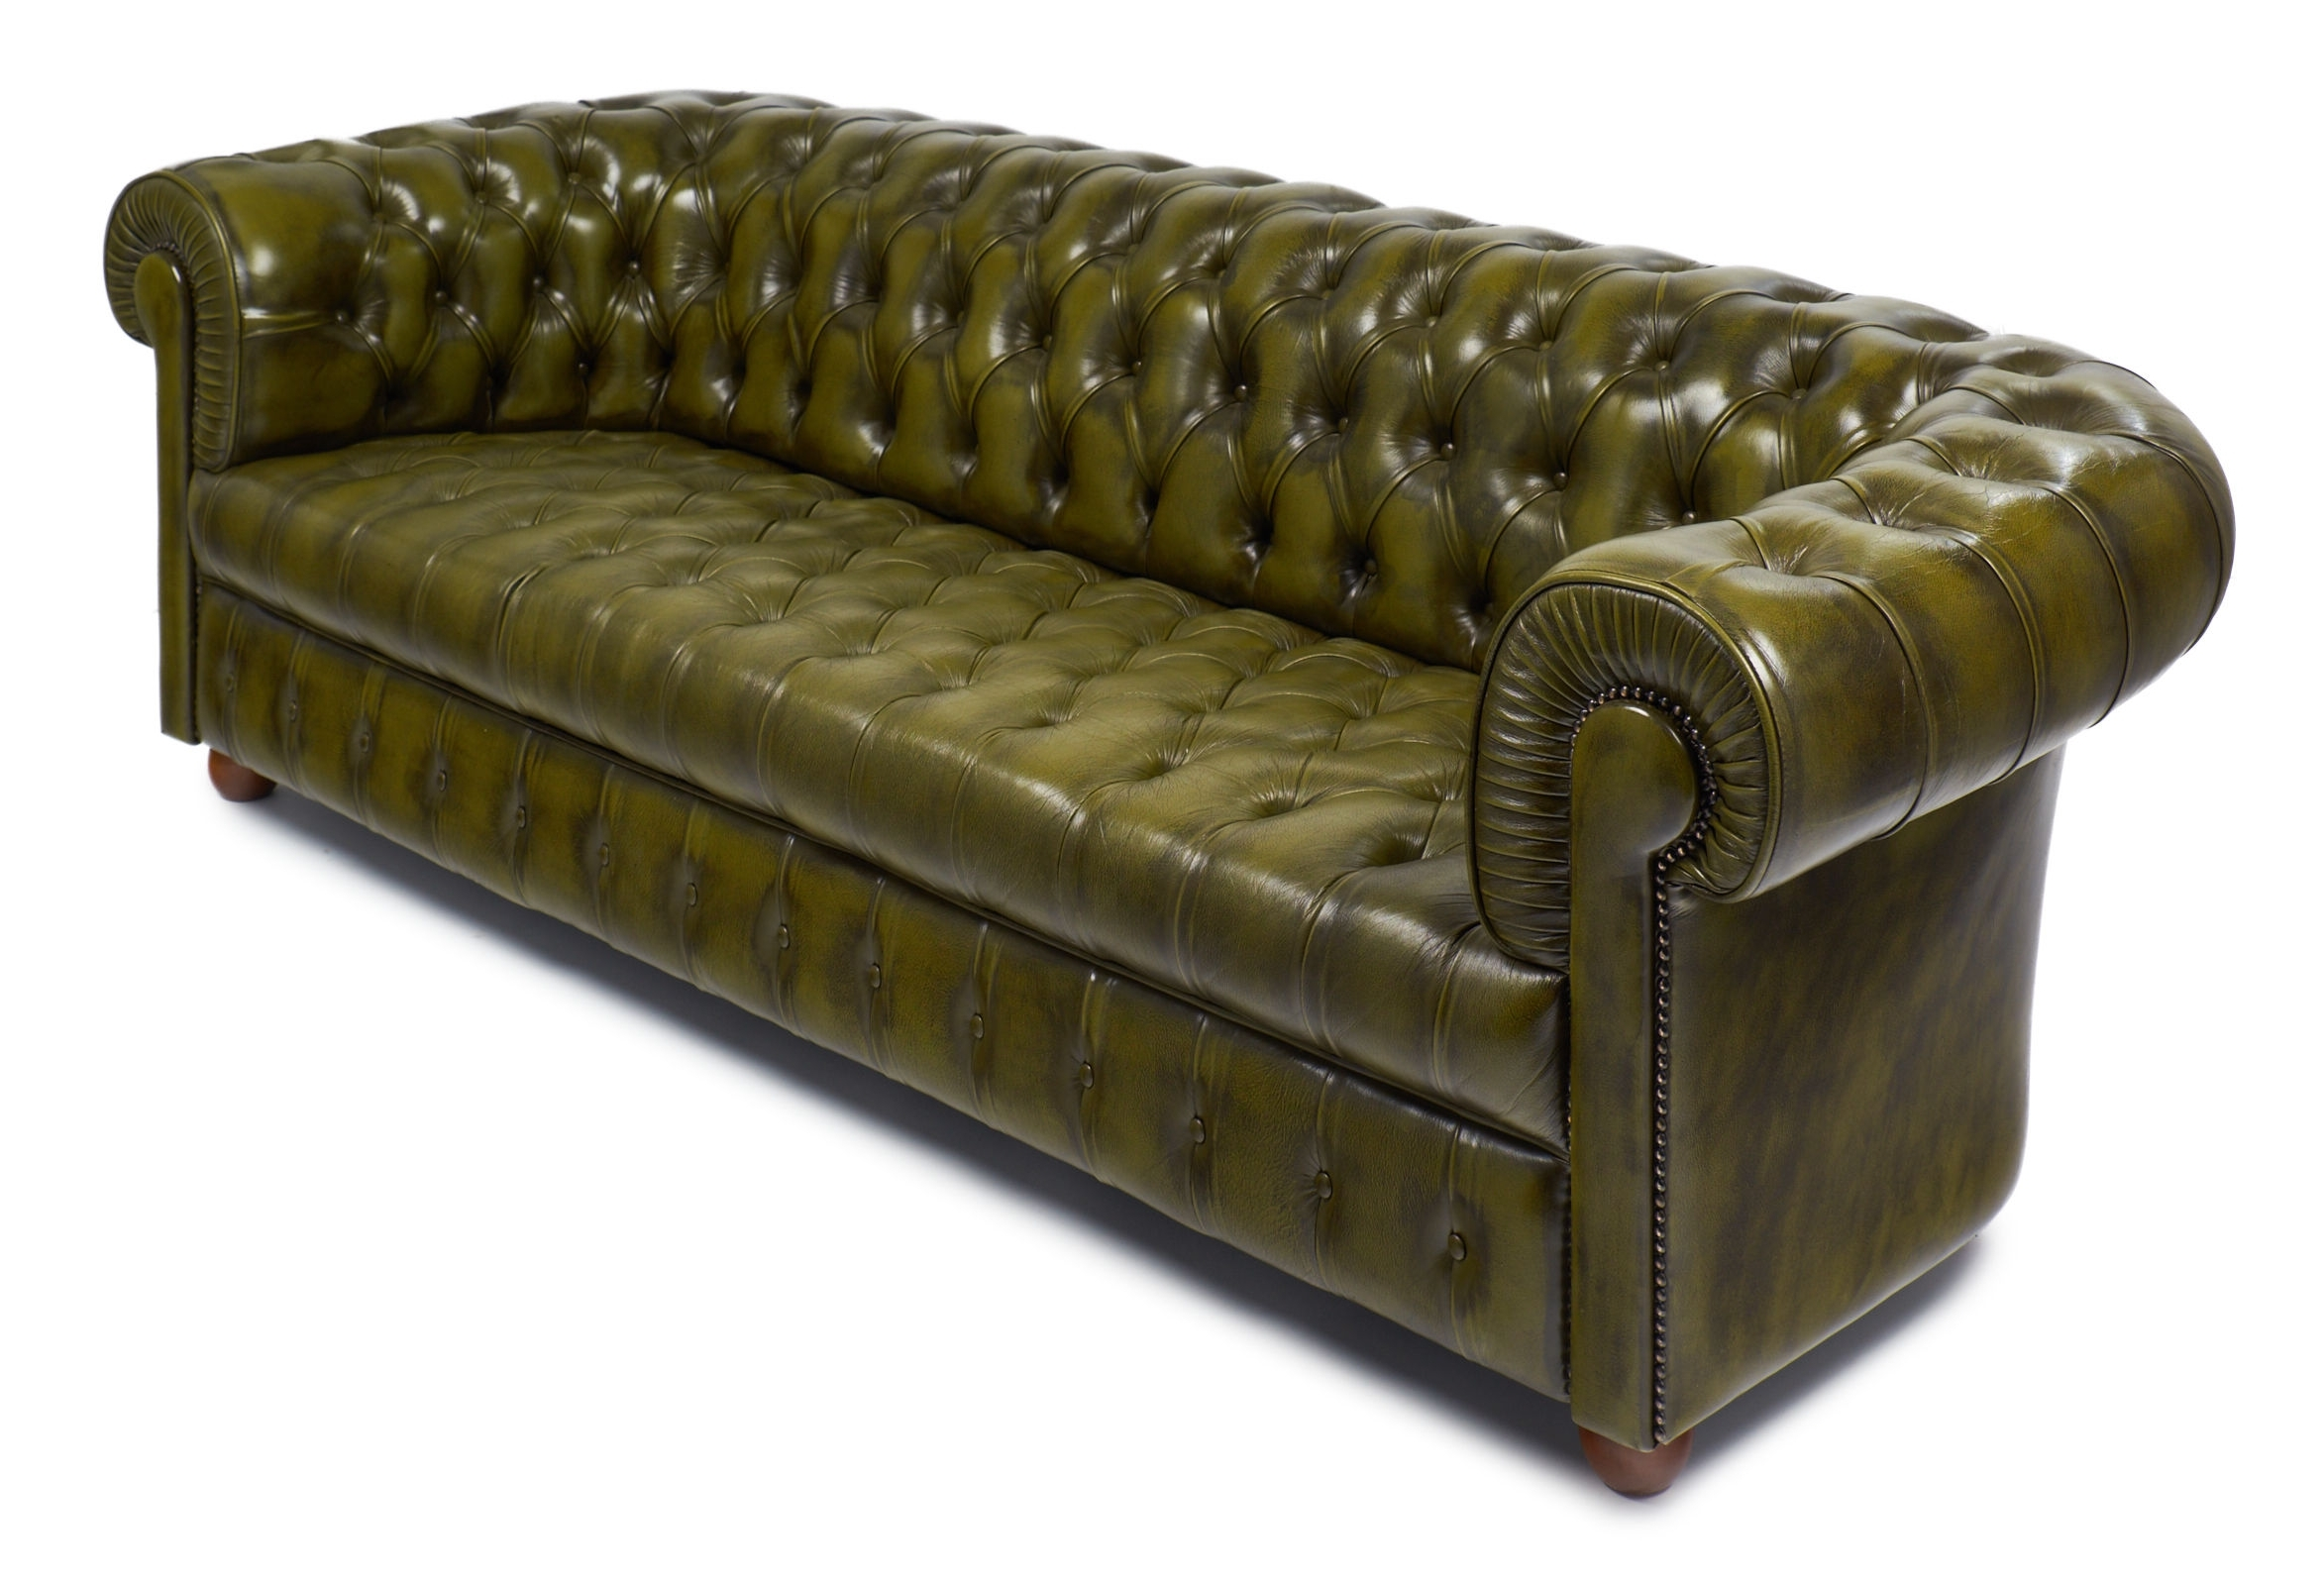 Vintage Green Leather English Chesterfield Sofa - Jean Marc Fray with regard to Preferred Vintage Chesterfield Sofas